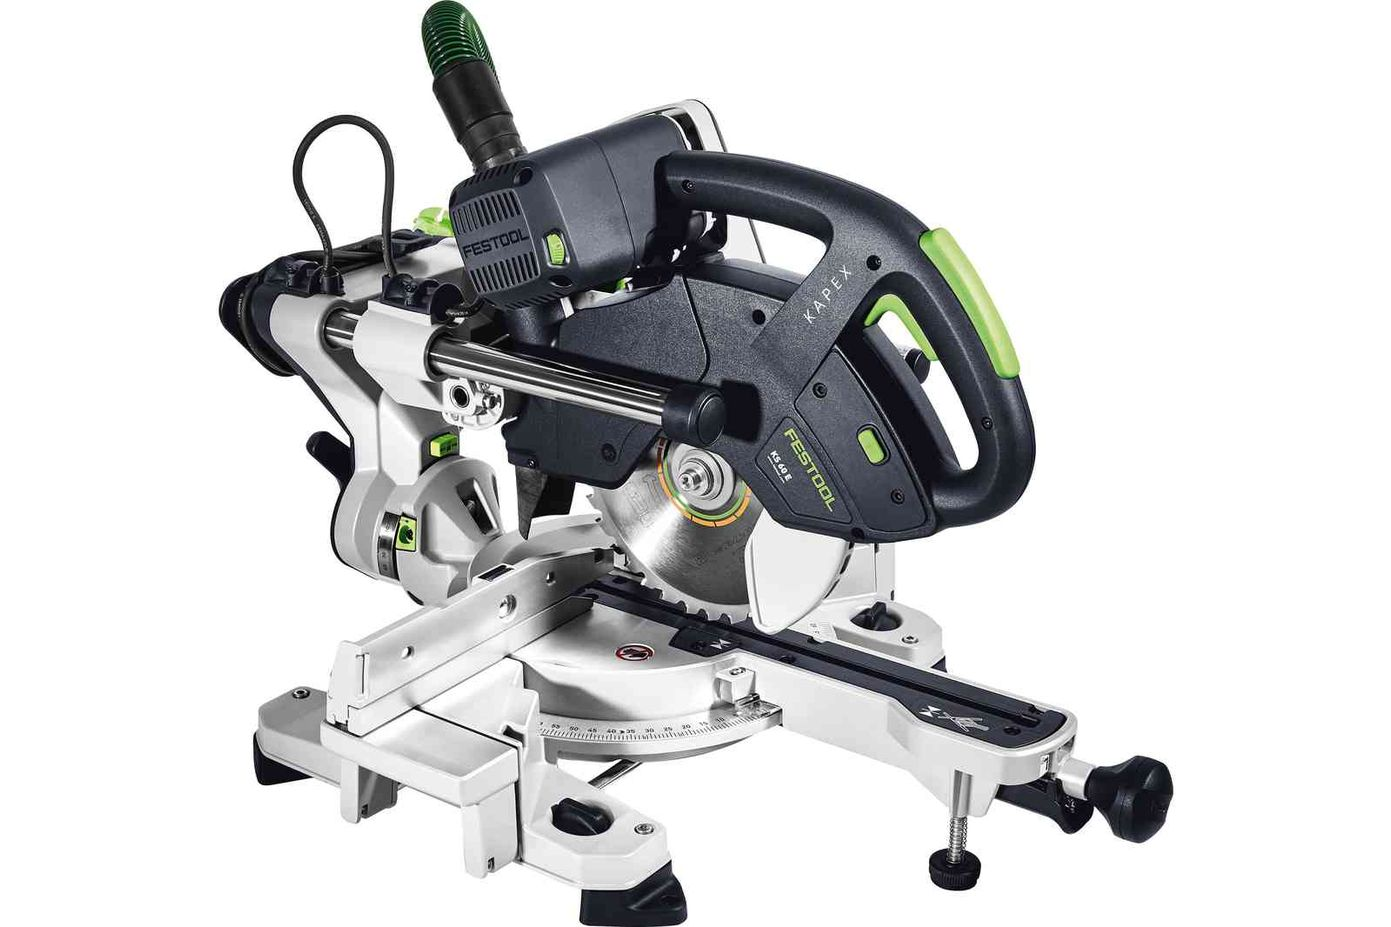 Imagine  Festool Ferastrau Circular Stationar Cu Sanie De Glisare Ks 60 E set